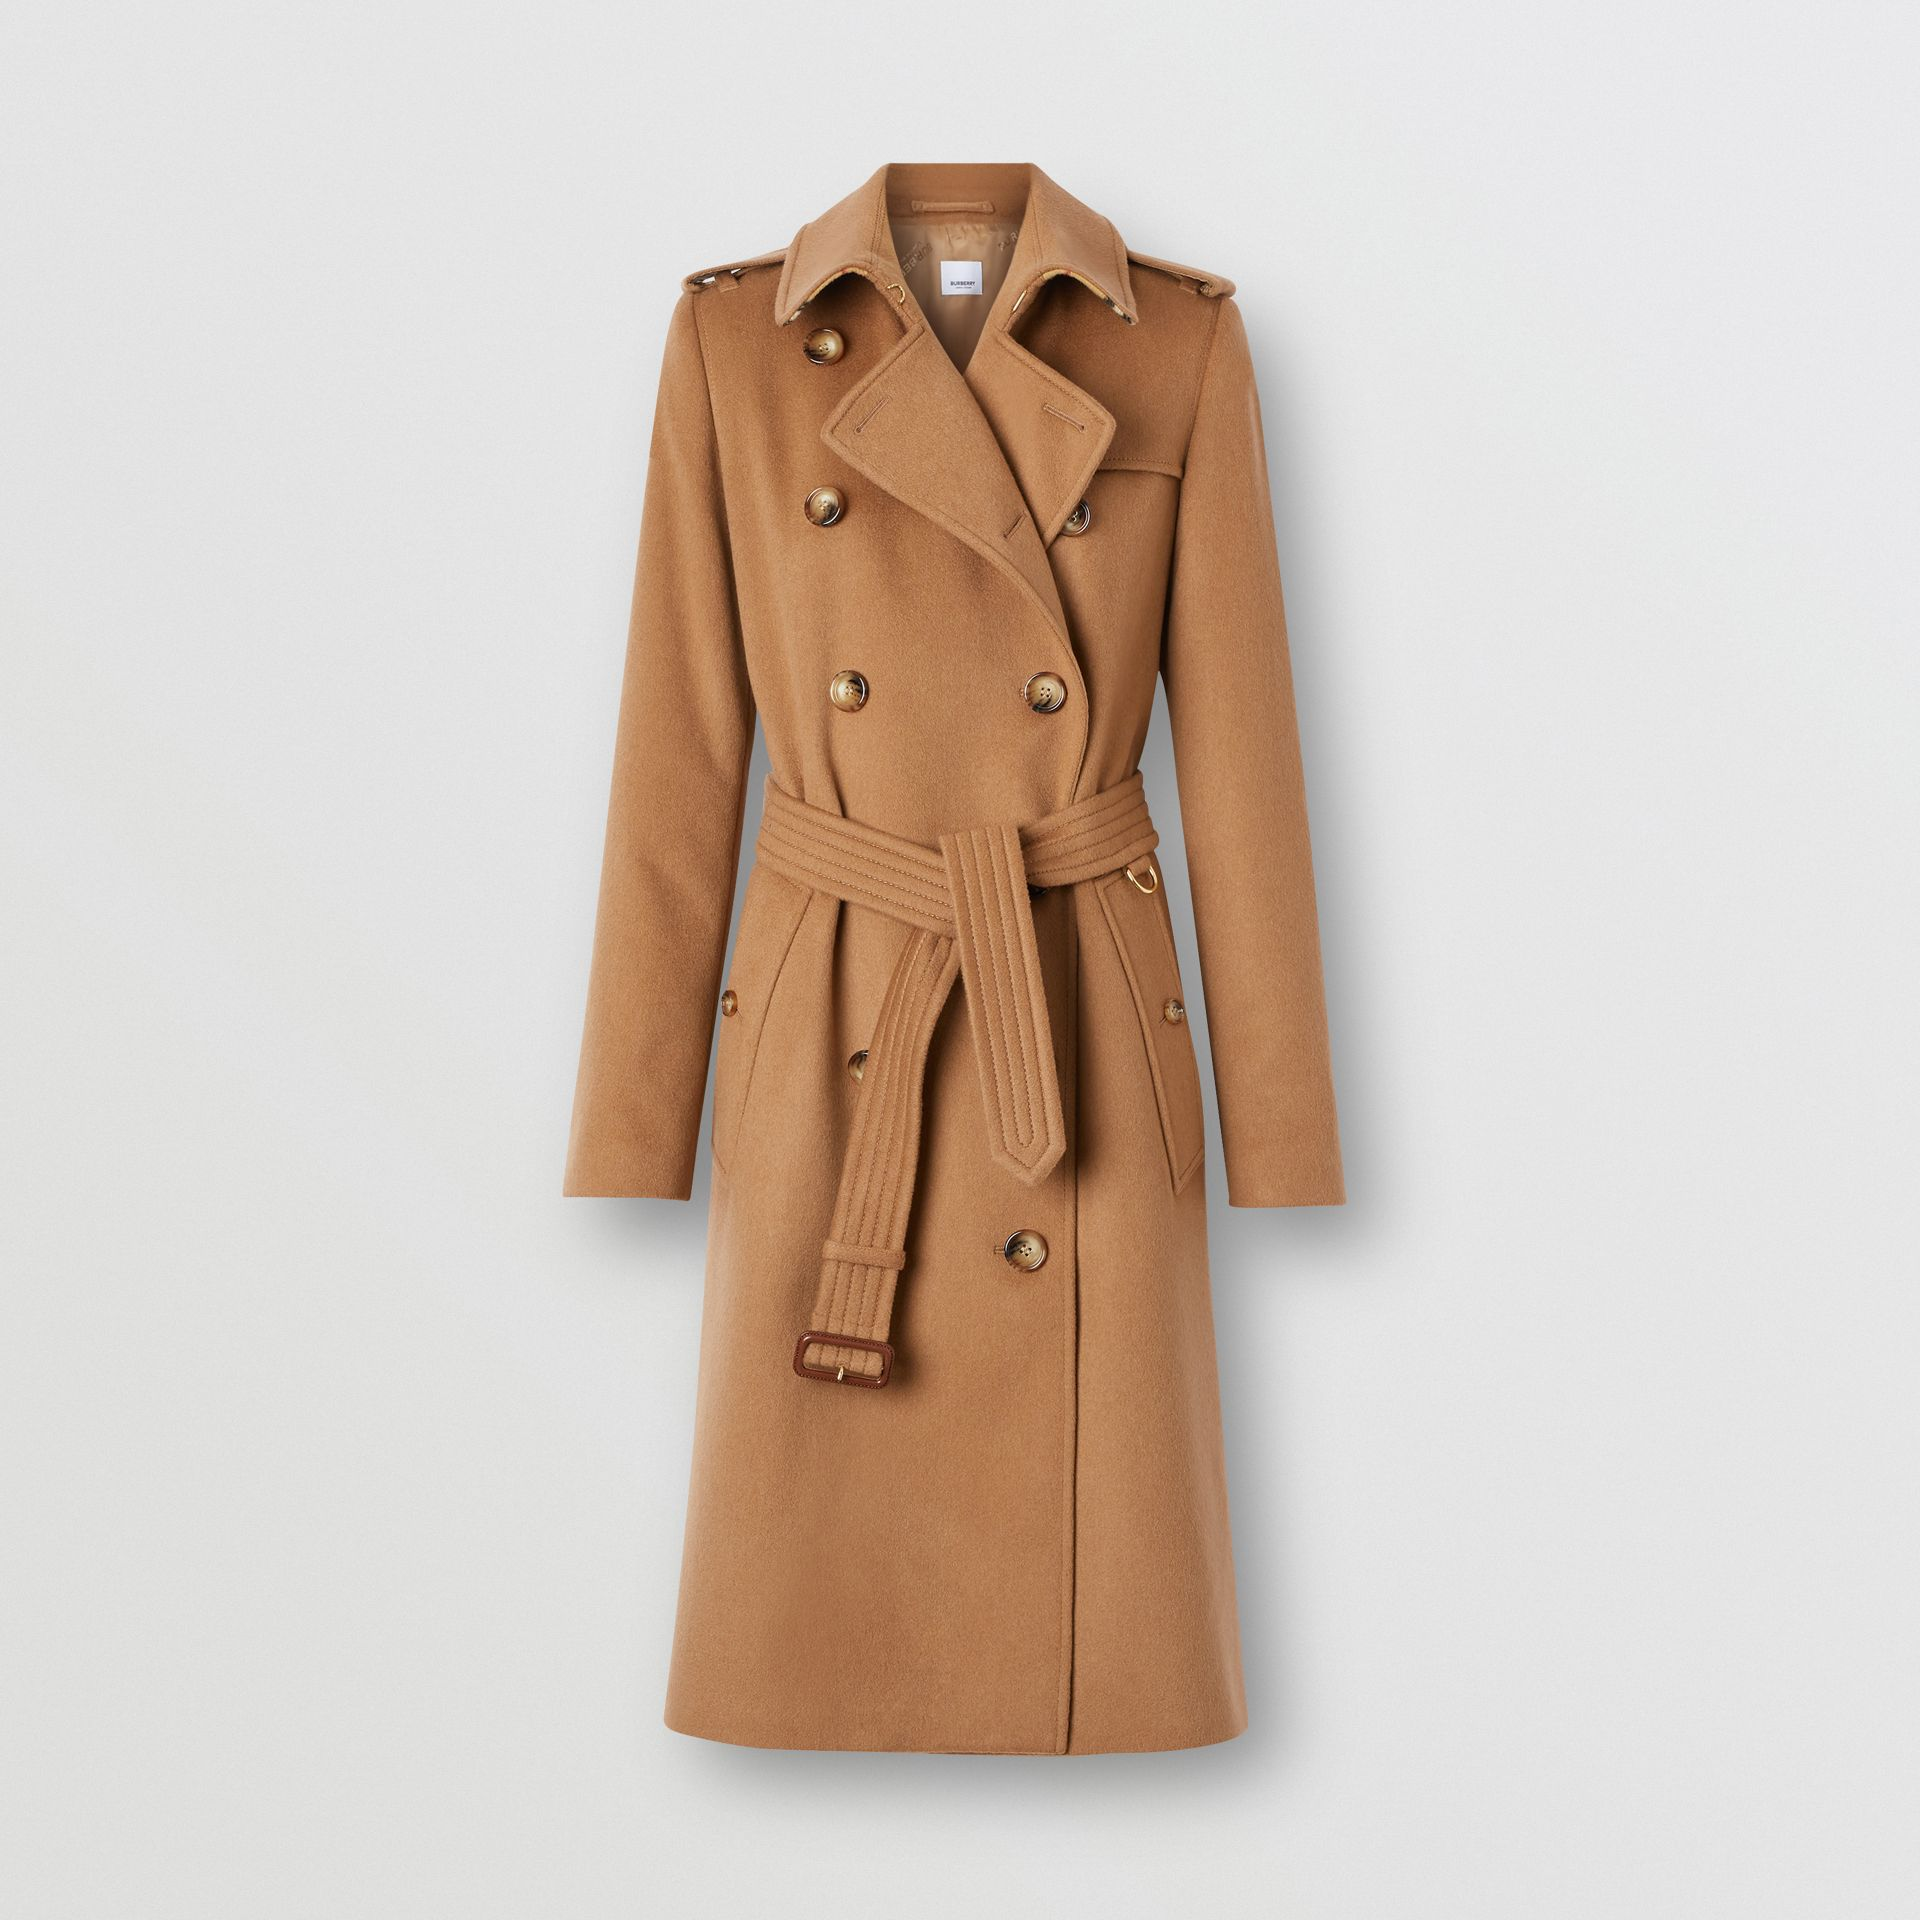 Cashmere Trench Coat in Bronze - Women | Burberry - gallery image 3